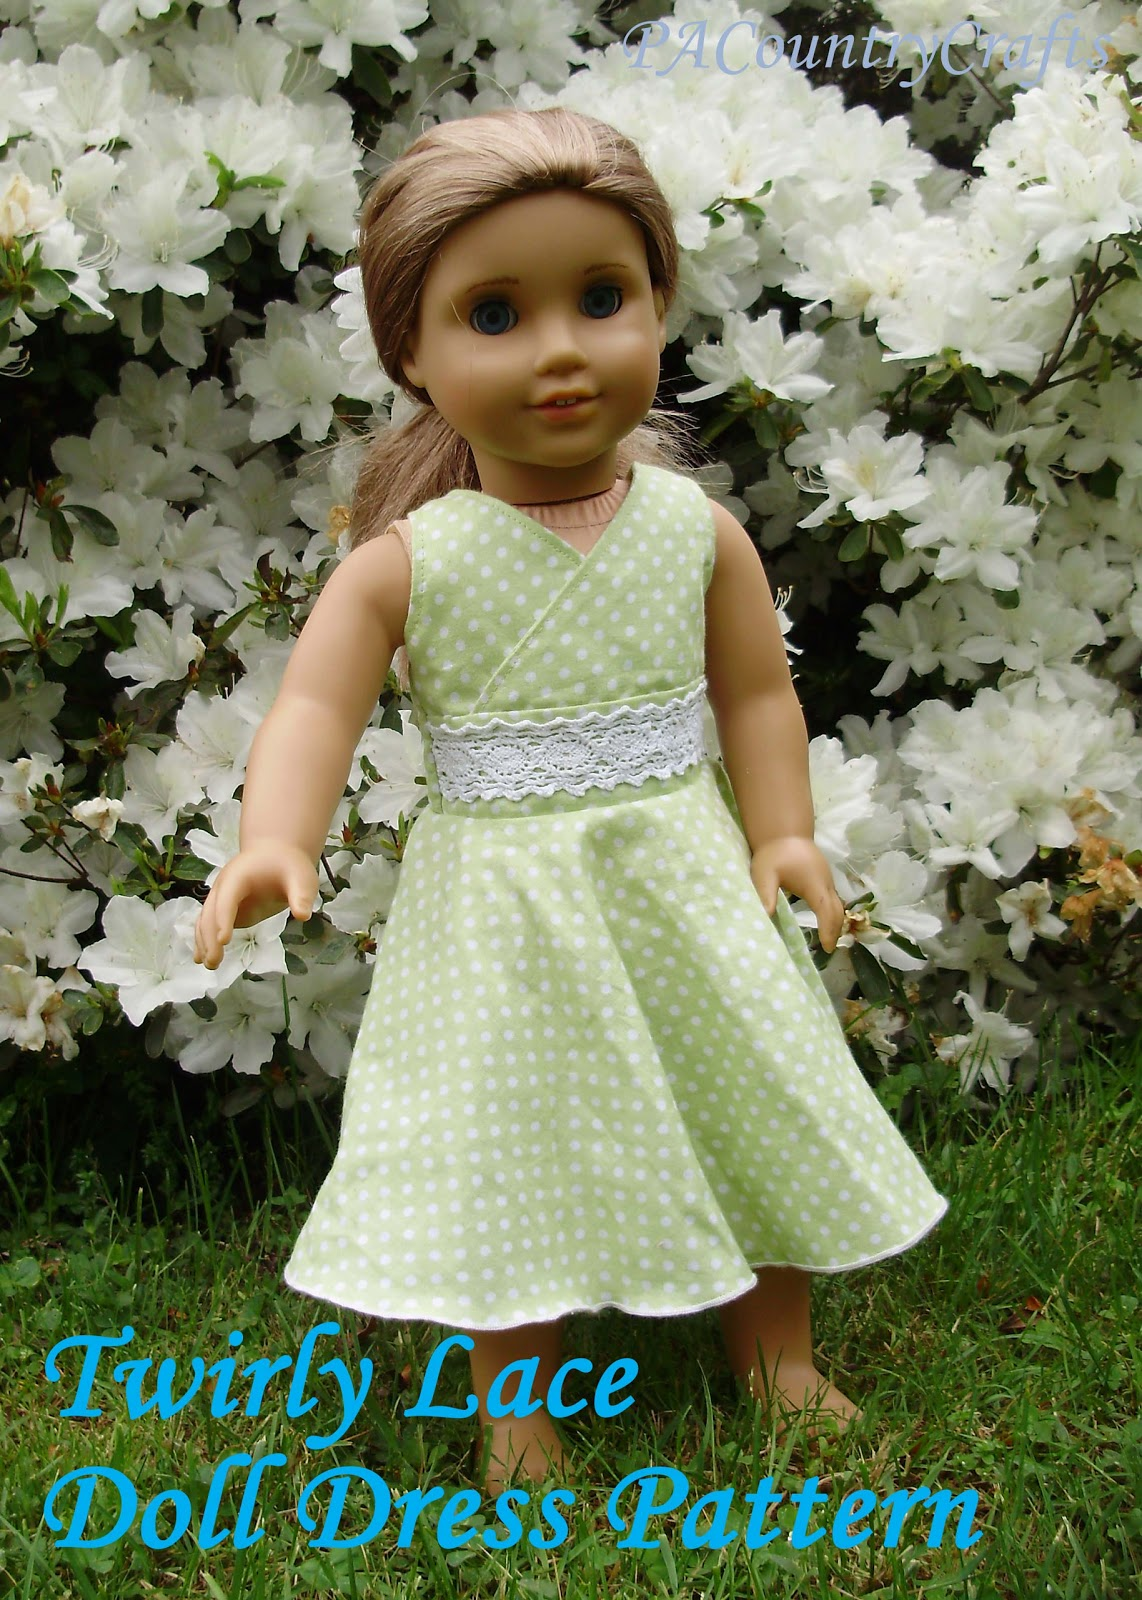 Doll Clothes Patterns By Valspierssews Review Of American: Twirly Lace Doll Dress Pattern